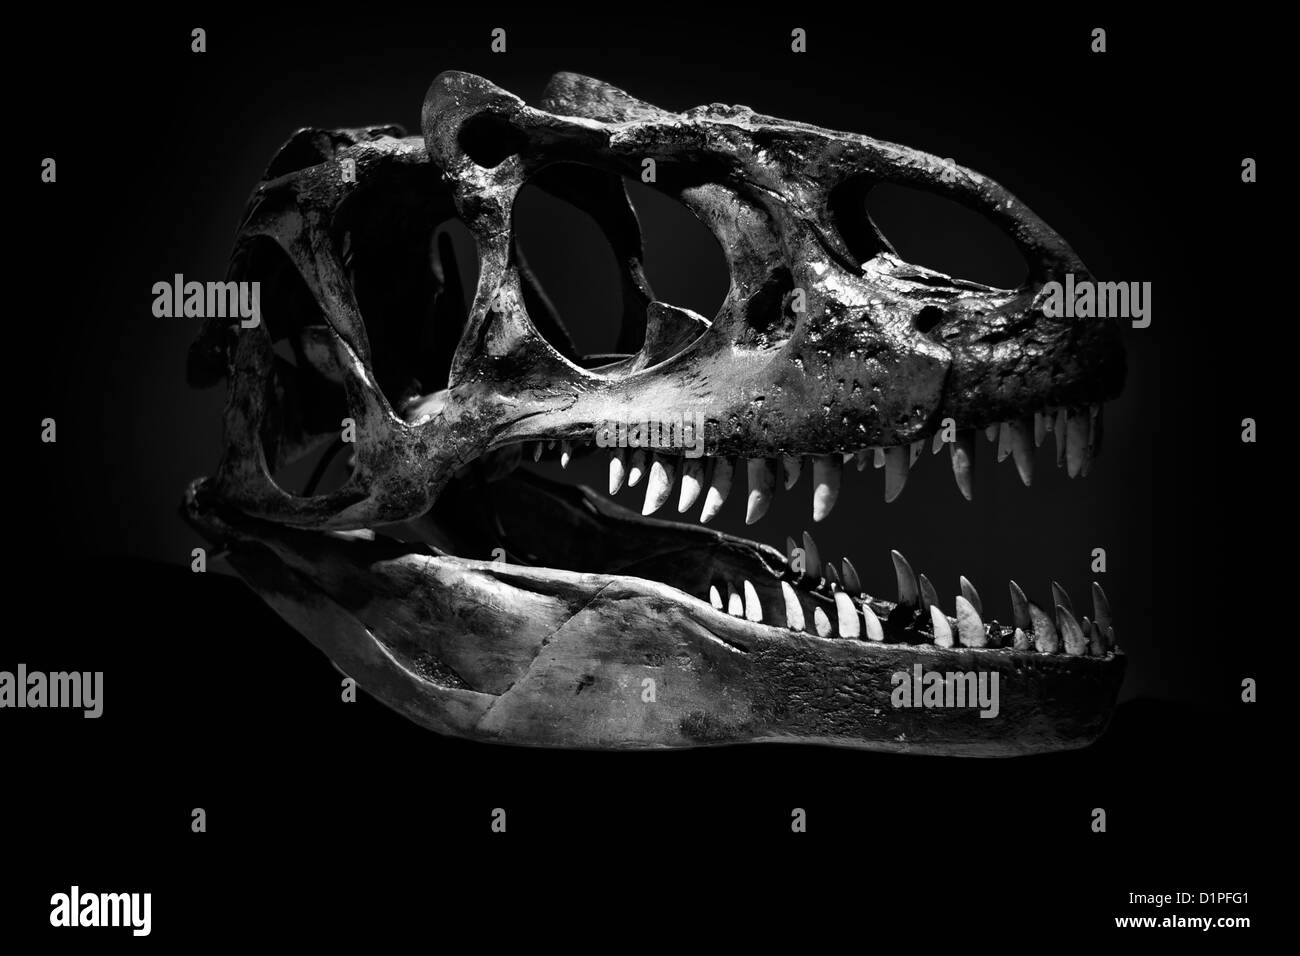 Skull of Tyrannosaurus Rex against a black background - Stock Image